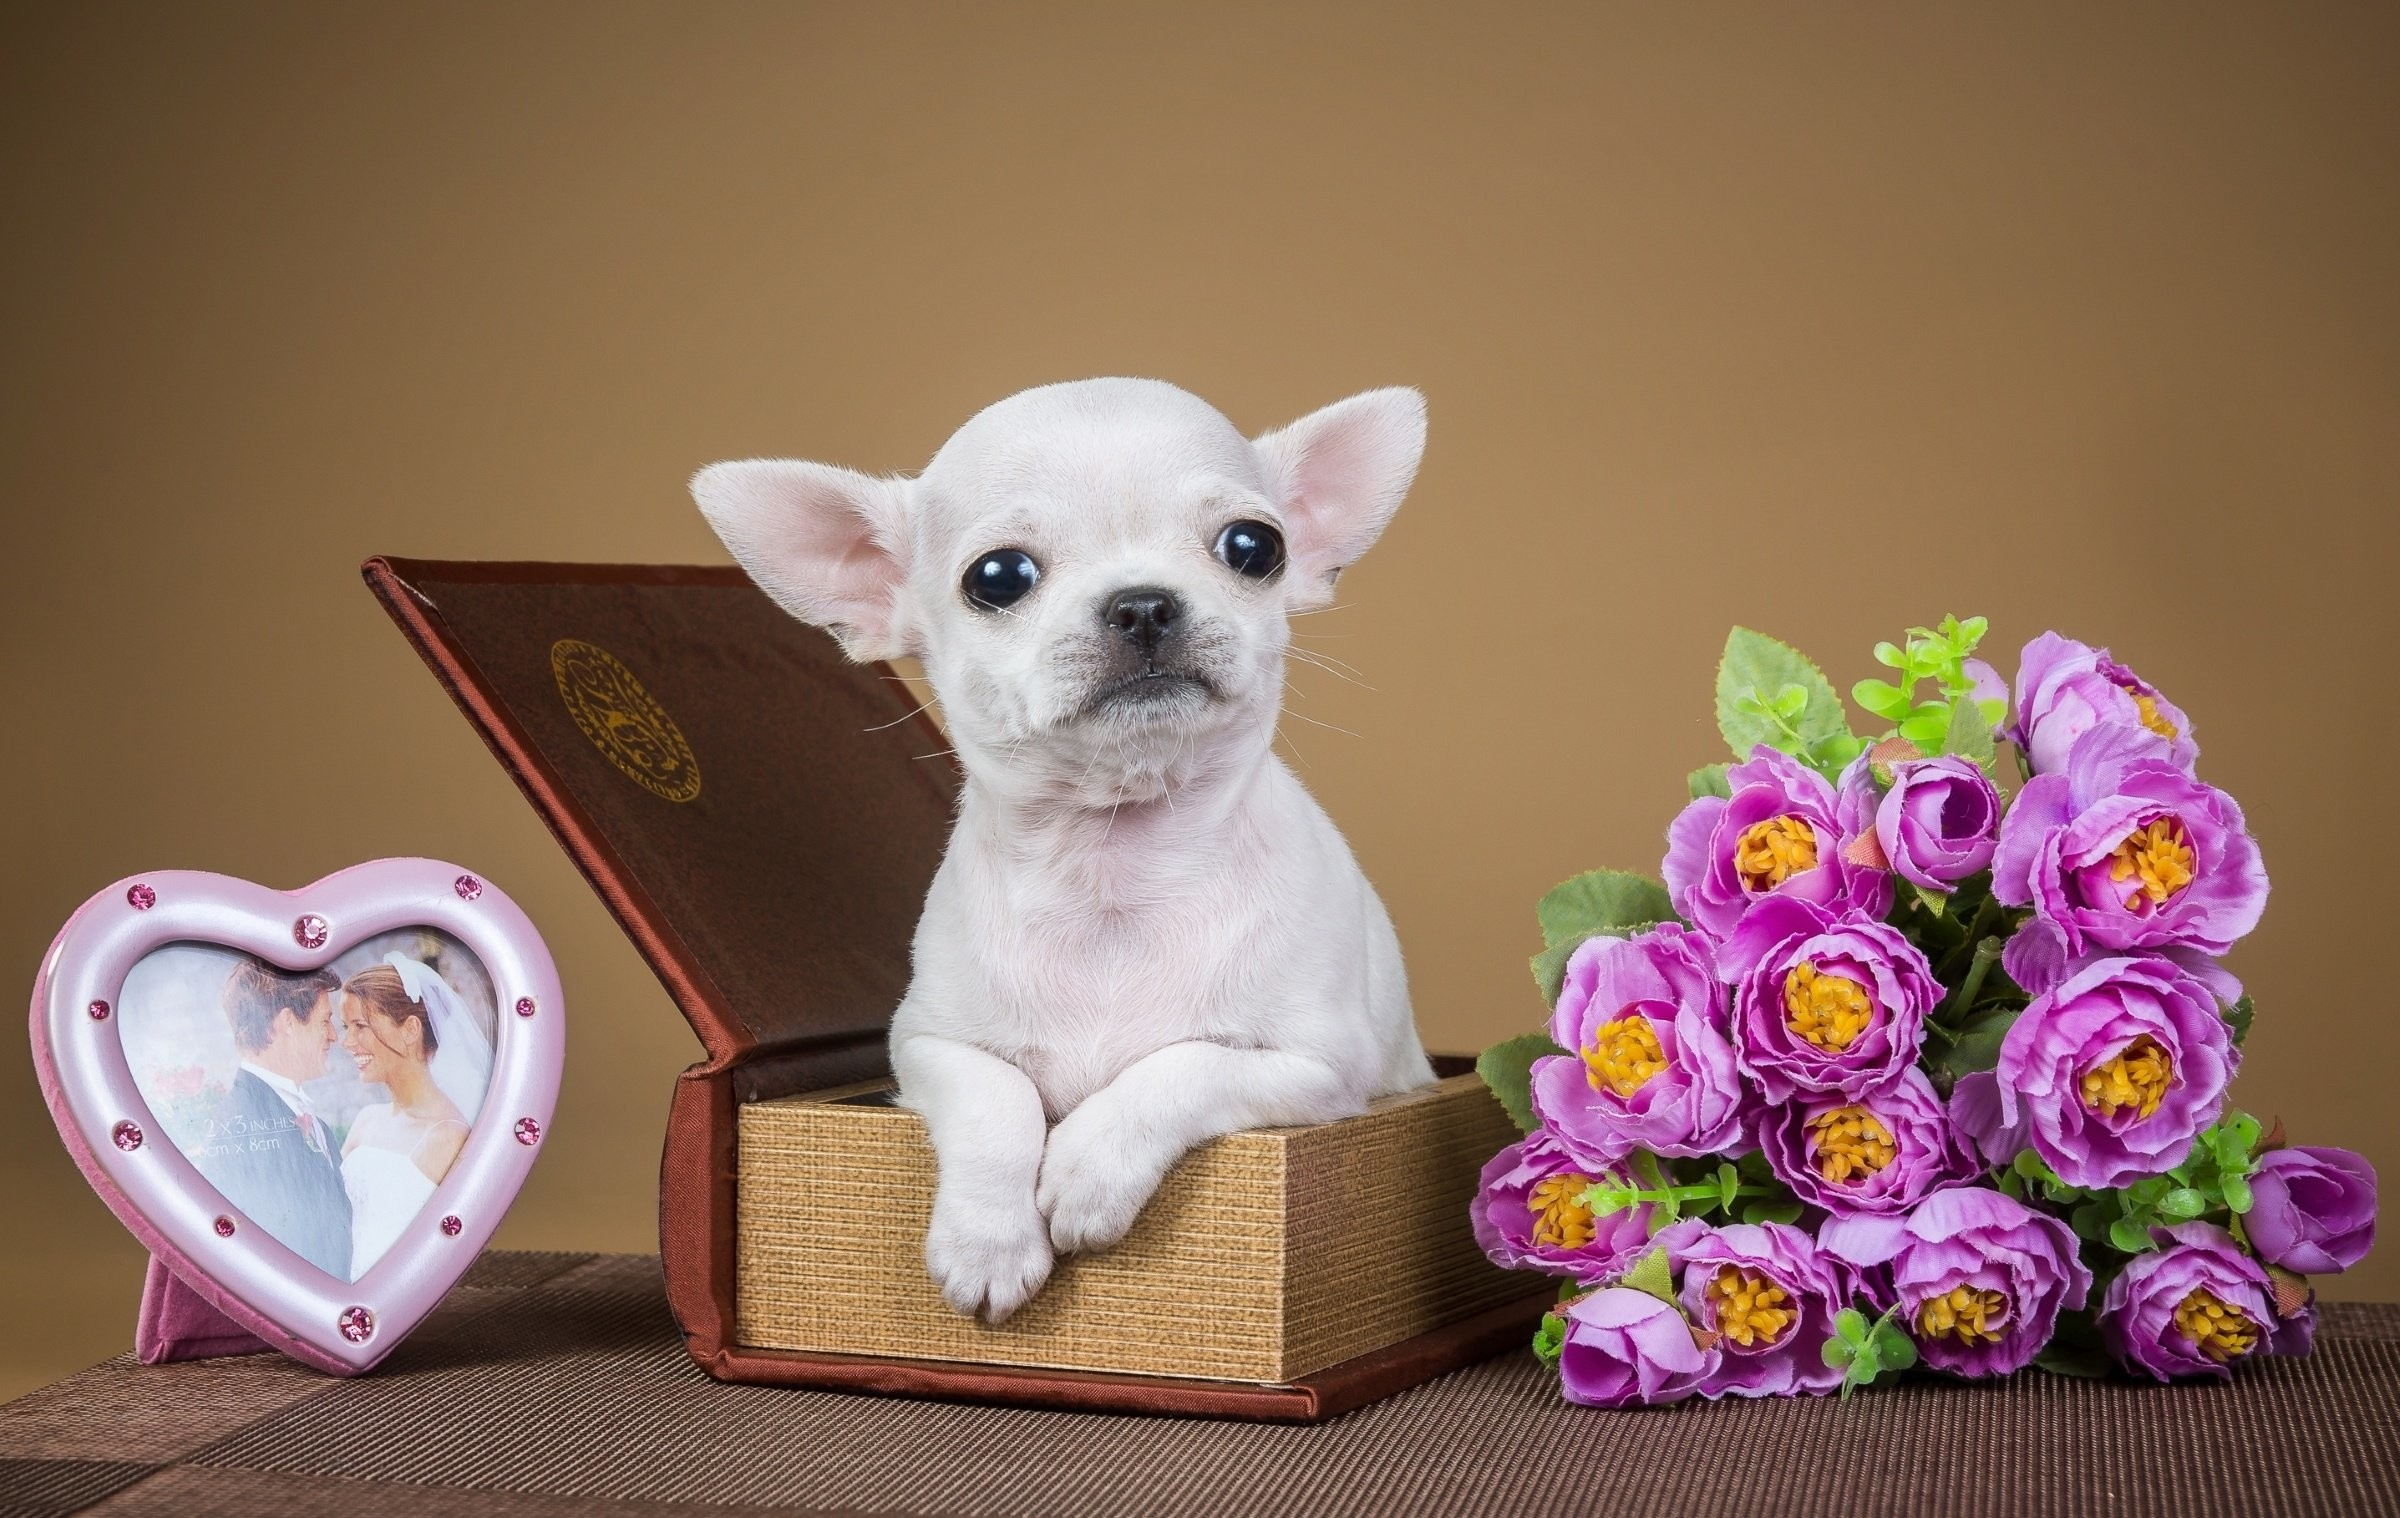 Res: 2400x1518, Chihuahua box samsung backgrounds hd wallpapers dog puppy jewelry amazing  flowers